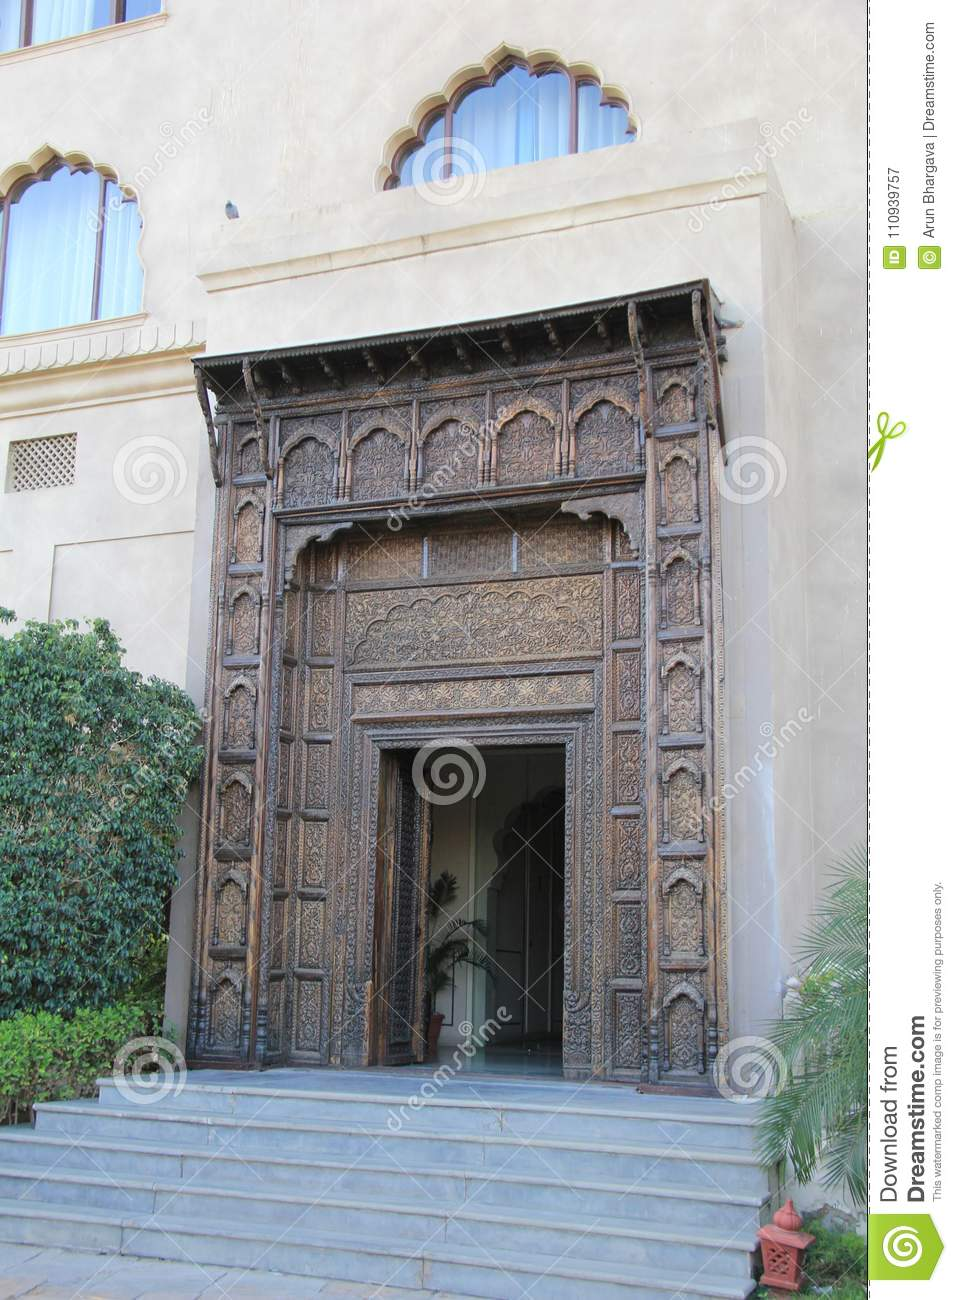 Artistic Decorated Wooden Entrance Gate Stock Image Image Of